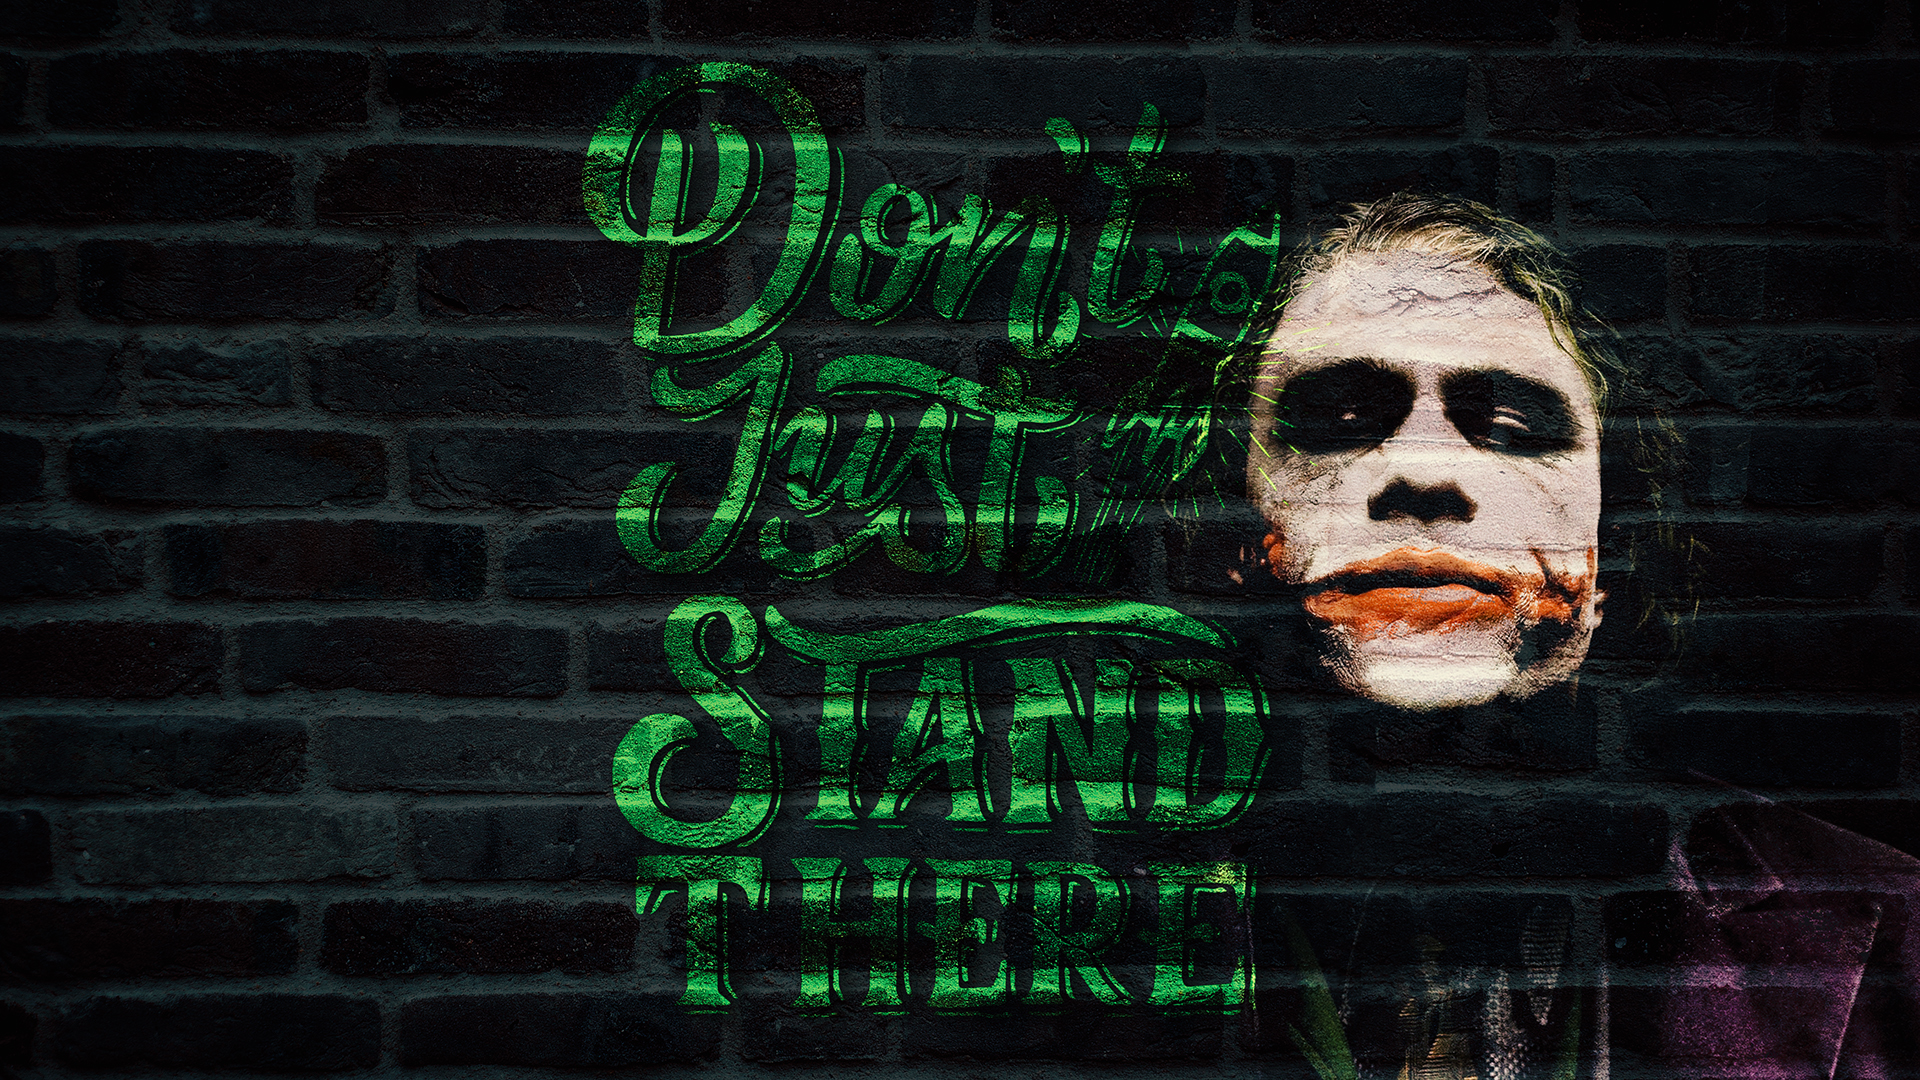 Joker Chromebook Wallpaper Size 1080 X 1920